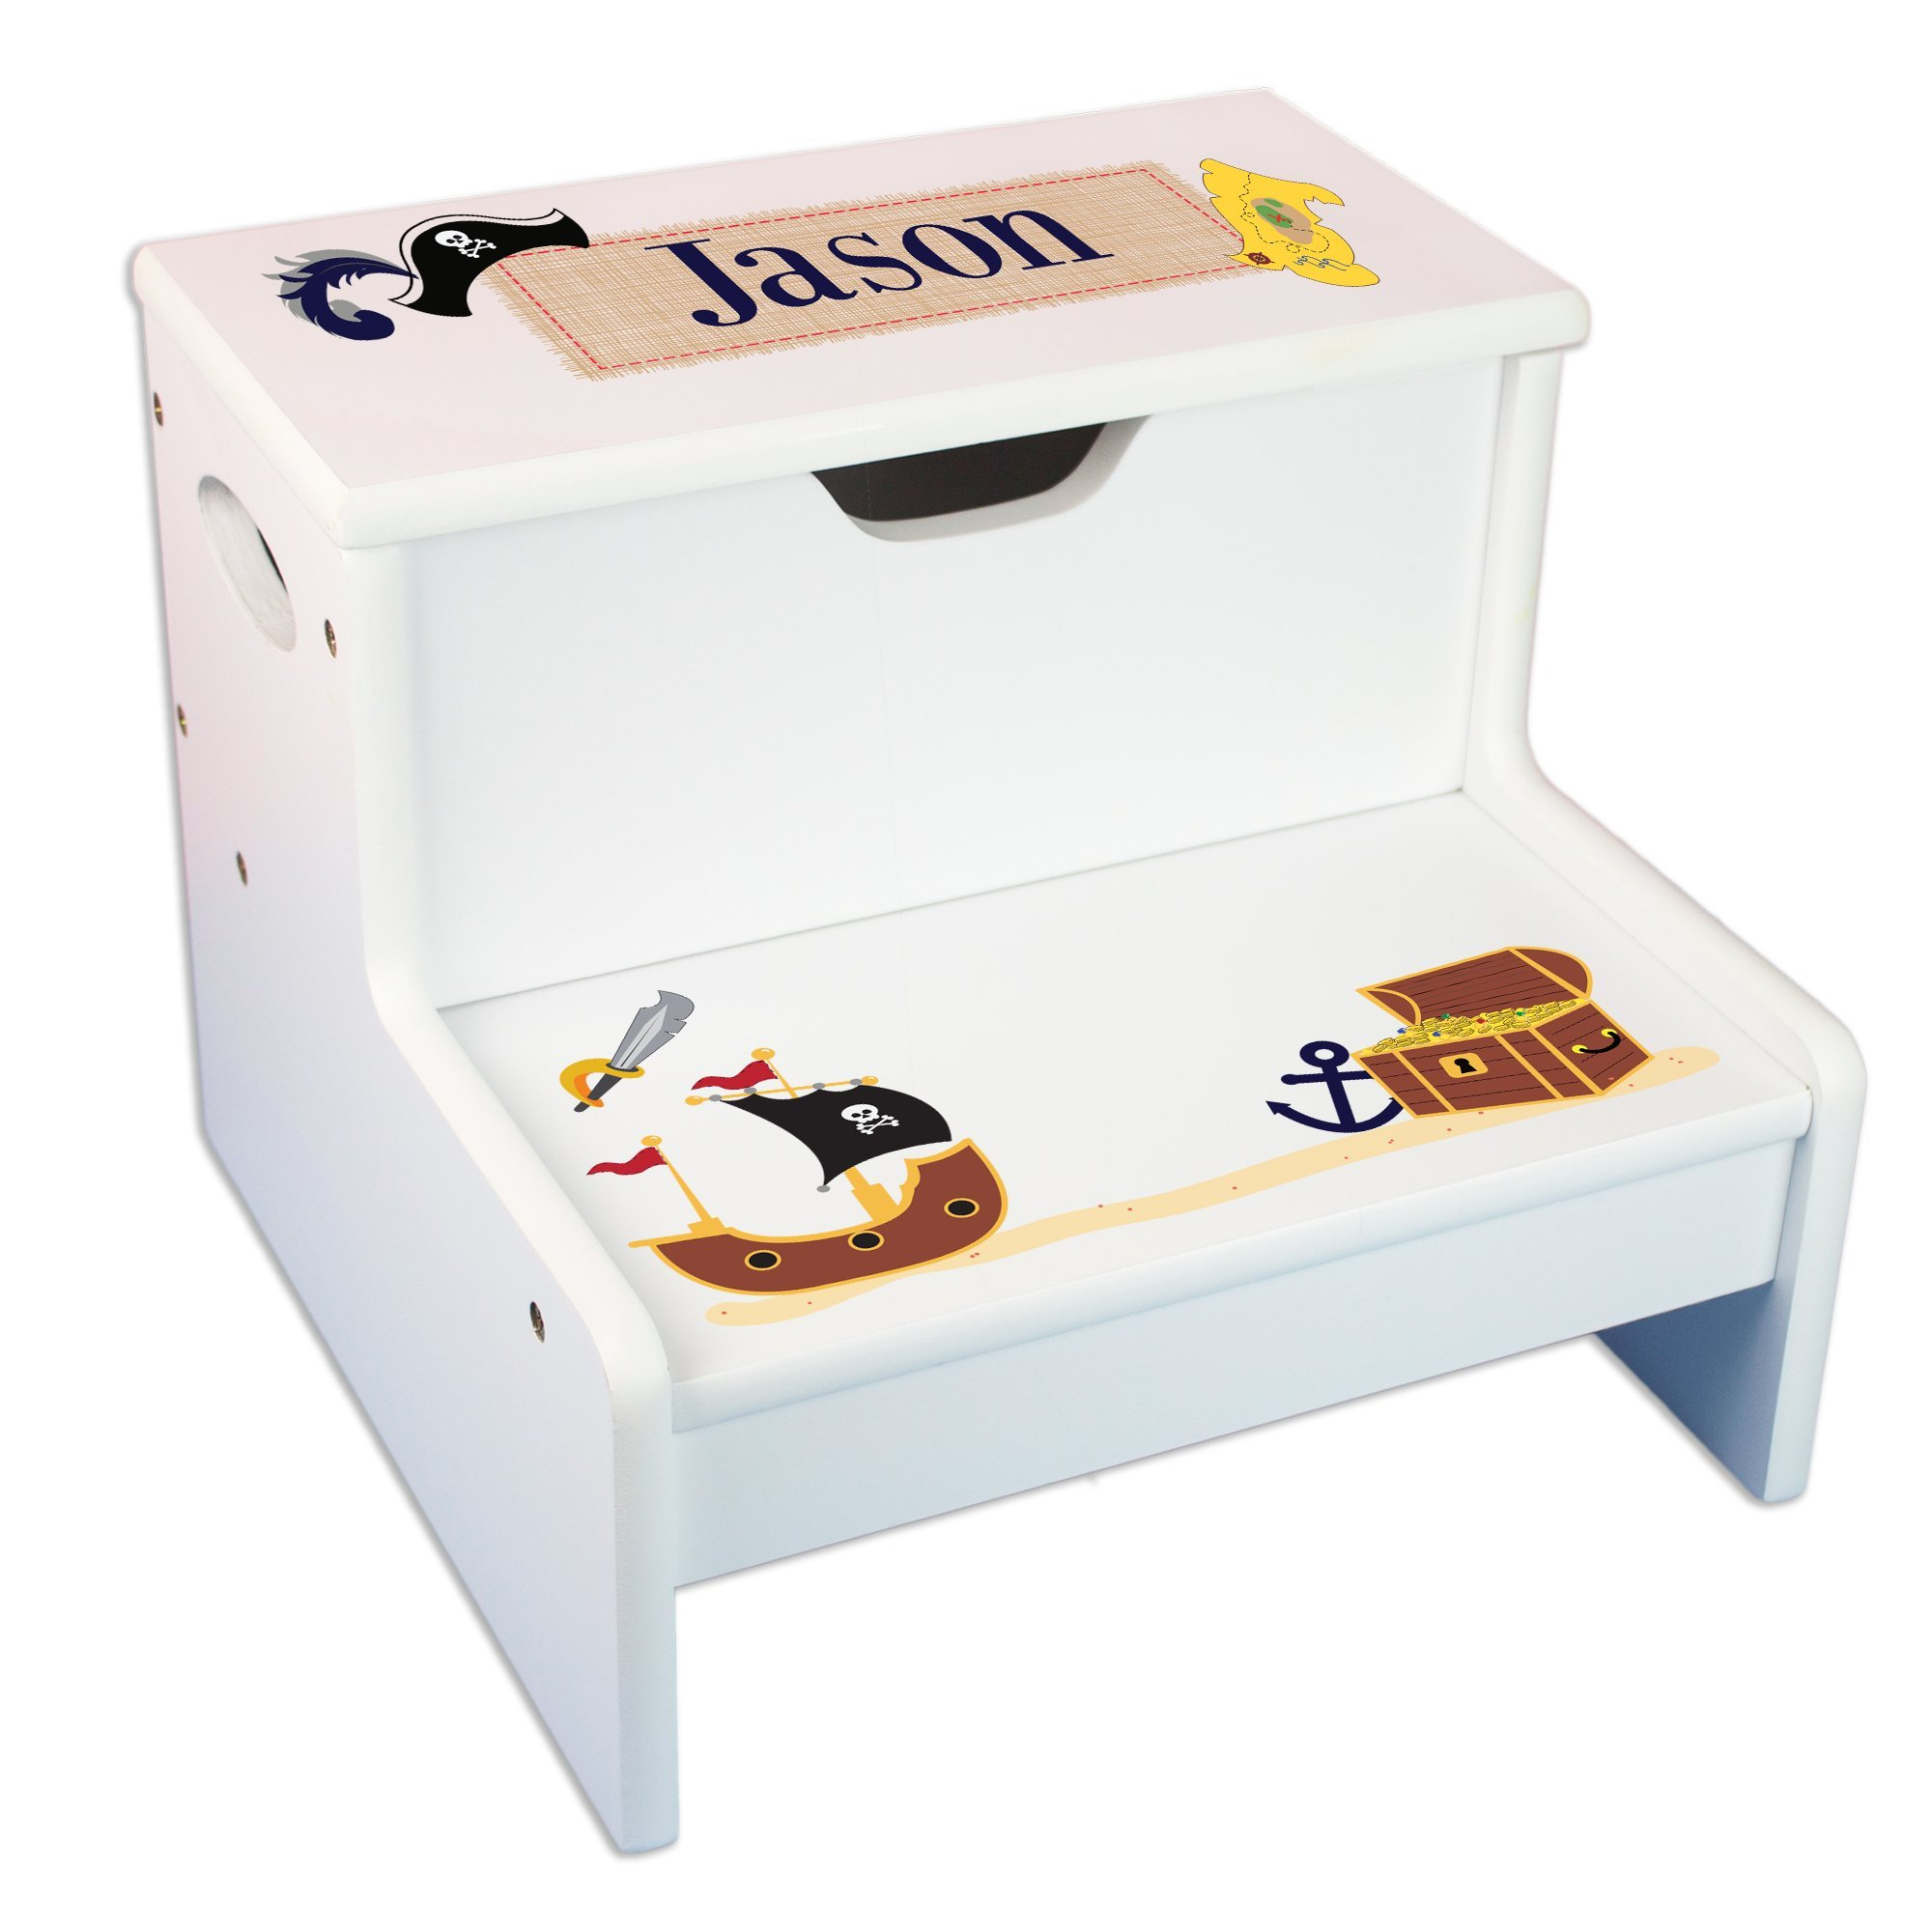 Personalized Pirate Storage Step Stool by MyBambino